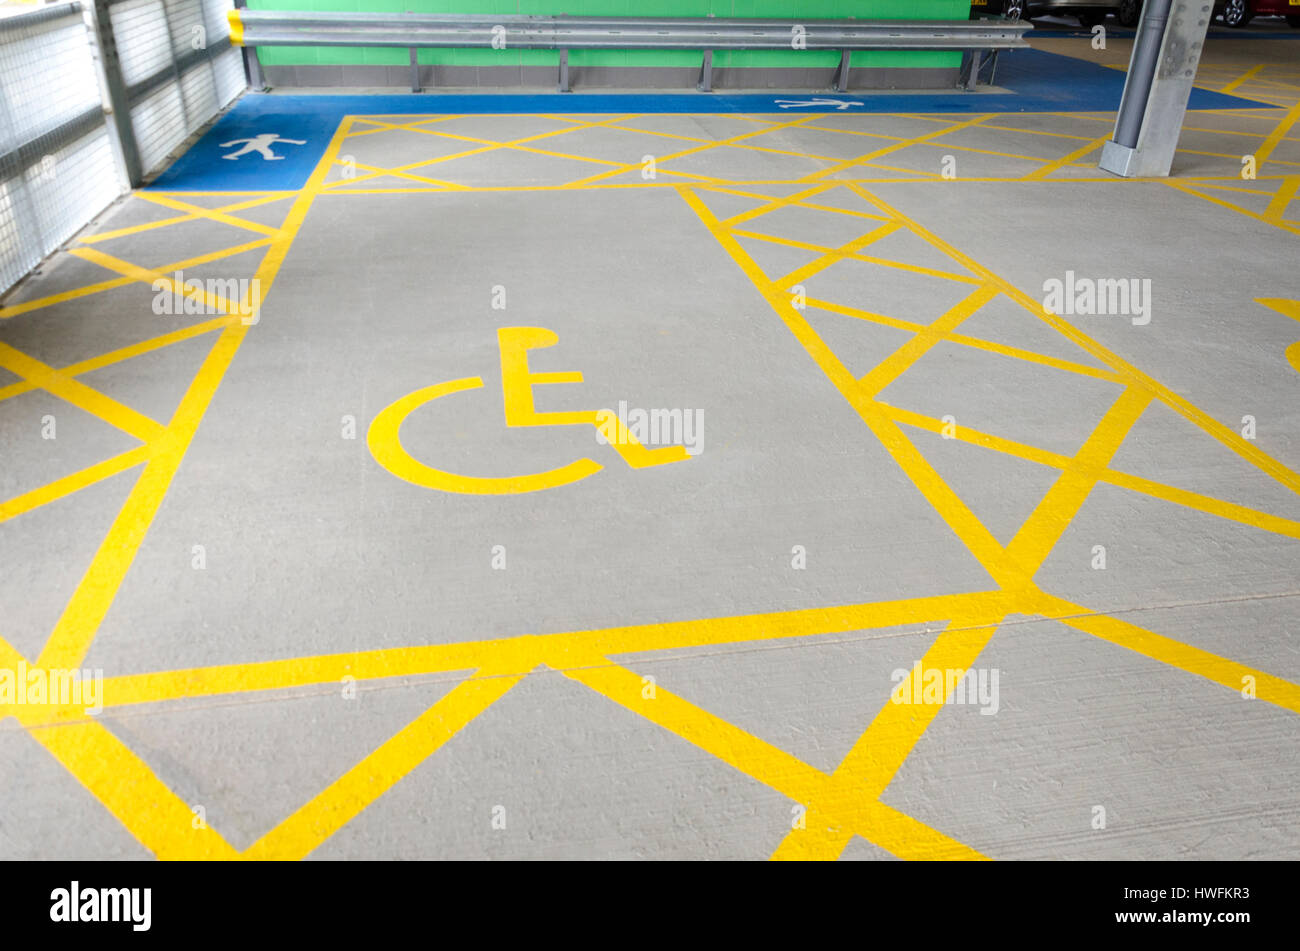 Large disabled parking space - Stock Image